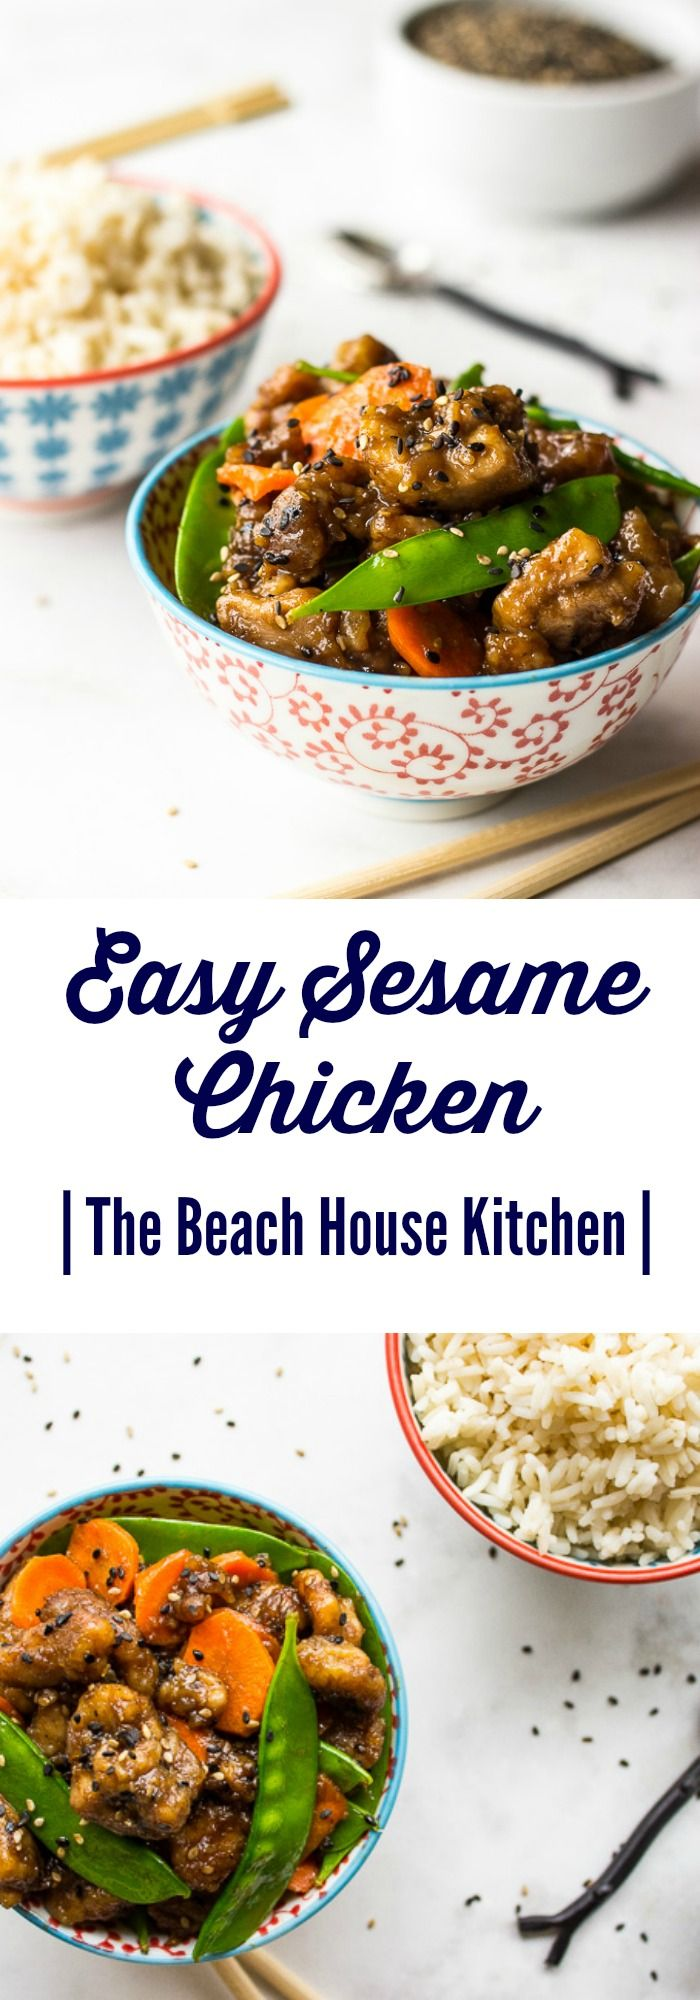 Who needs takeout when you can enjoy this Easy Sesame Chicken made right at home!